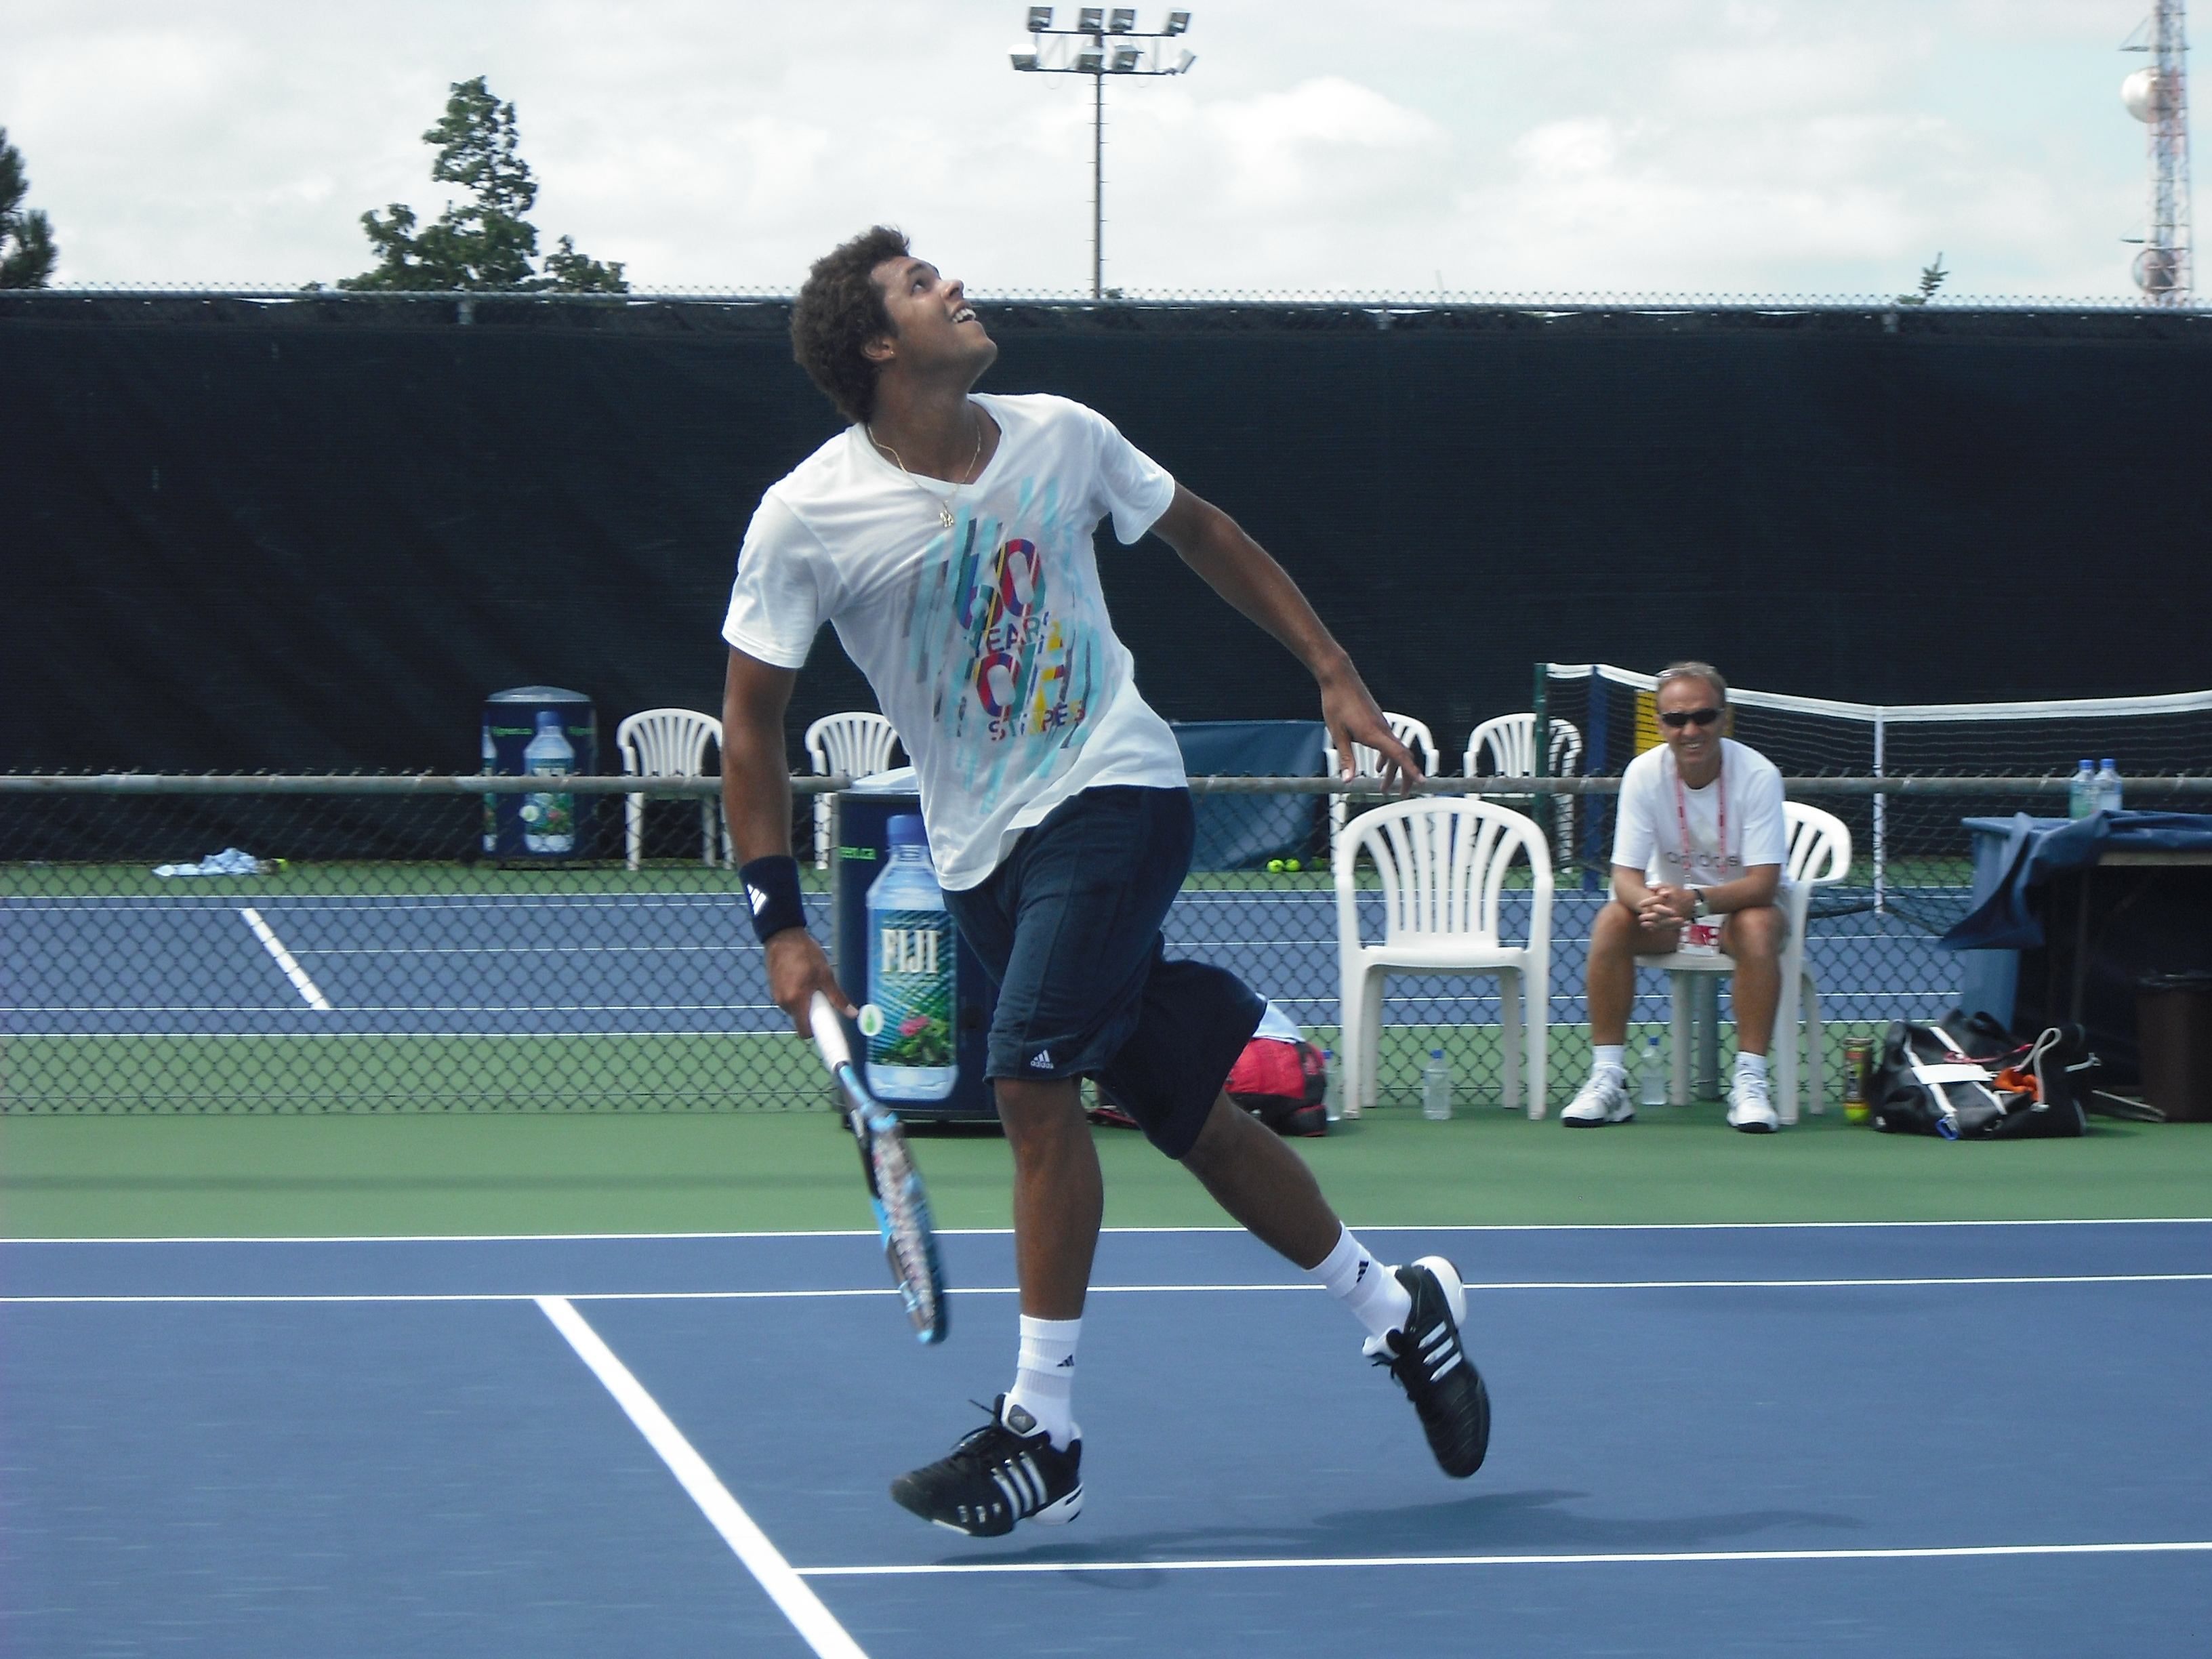 Jo Wilfried Tsonga, Copyright TennisEastCoast.com